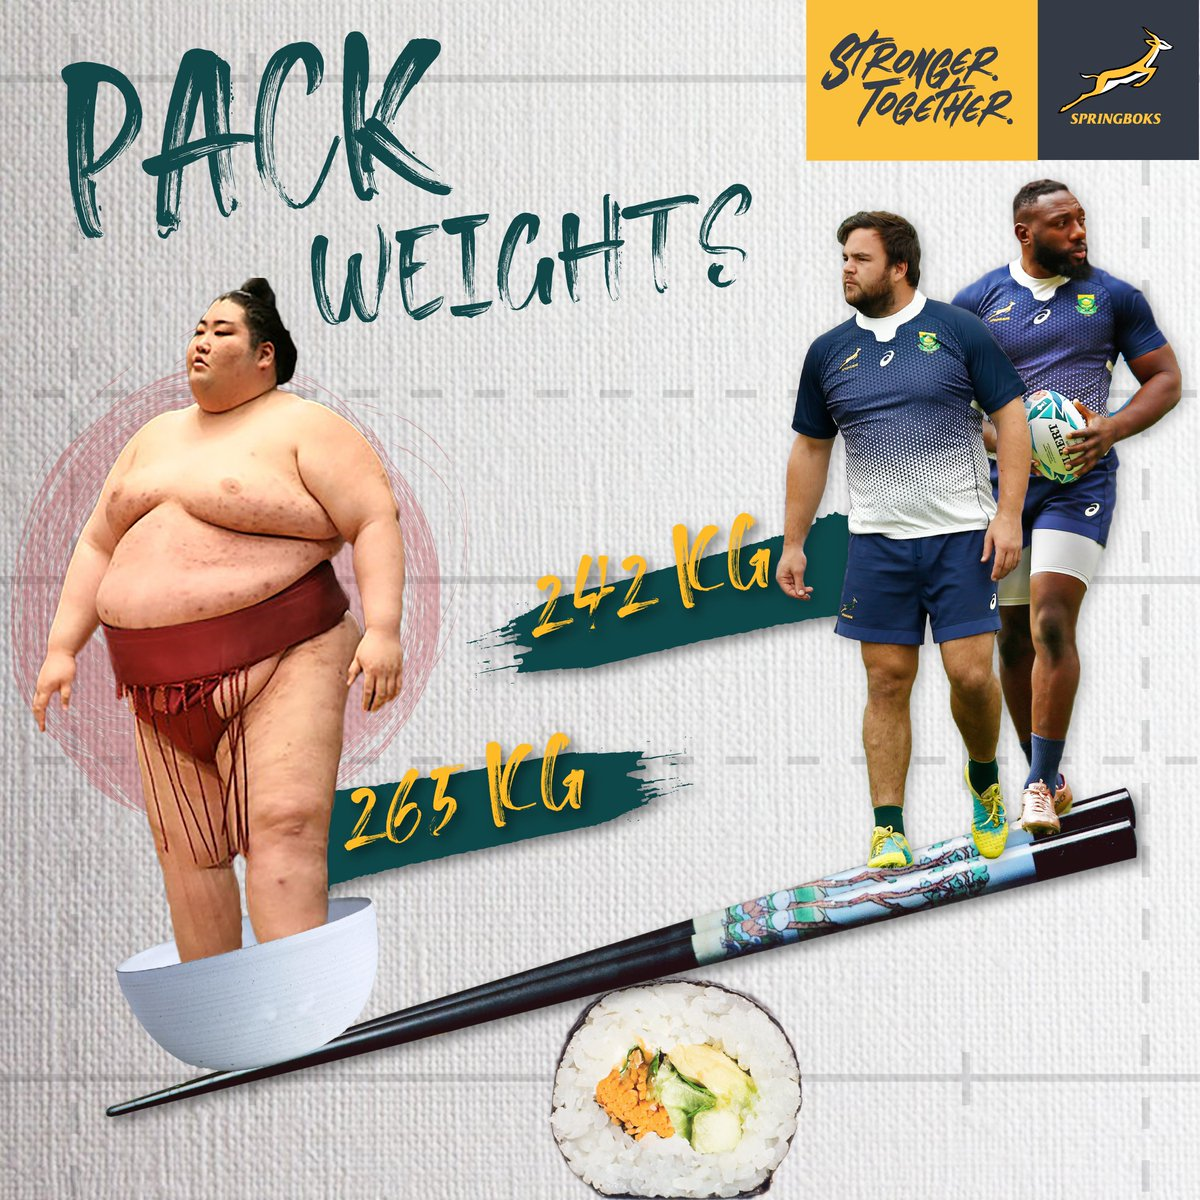 #EastvsWest Volume 3: Tendai Mtawarira (117kgs) and Frans Malherbe (125kgs) combined weight is still less than the heaviest ever Japanese sumo wrestler in history, Yamatoyama Ryuta, who weighs 265kgs 🇿🇦🇯🇵 #StrongerTogether #RWC2019